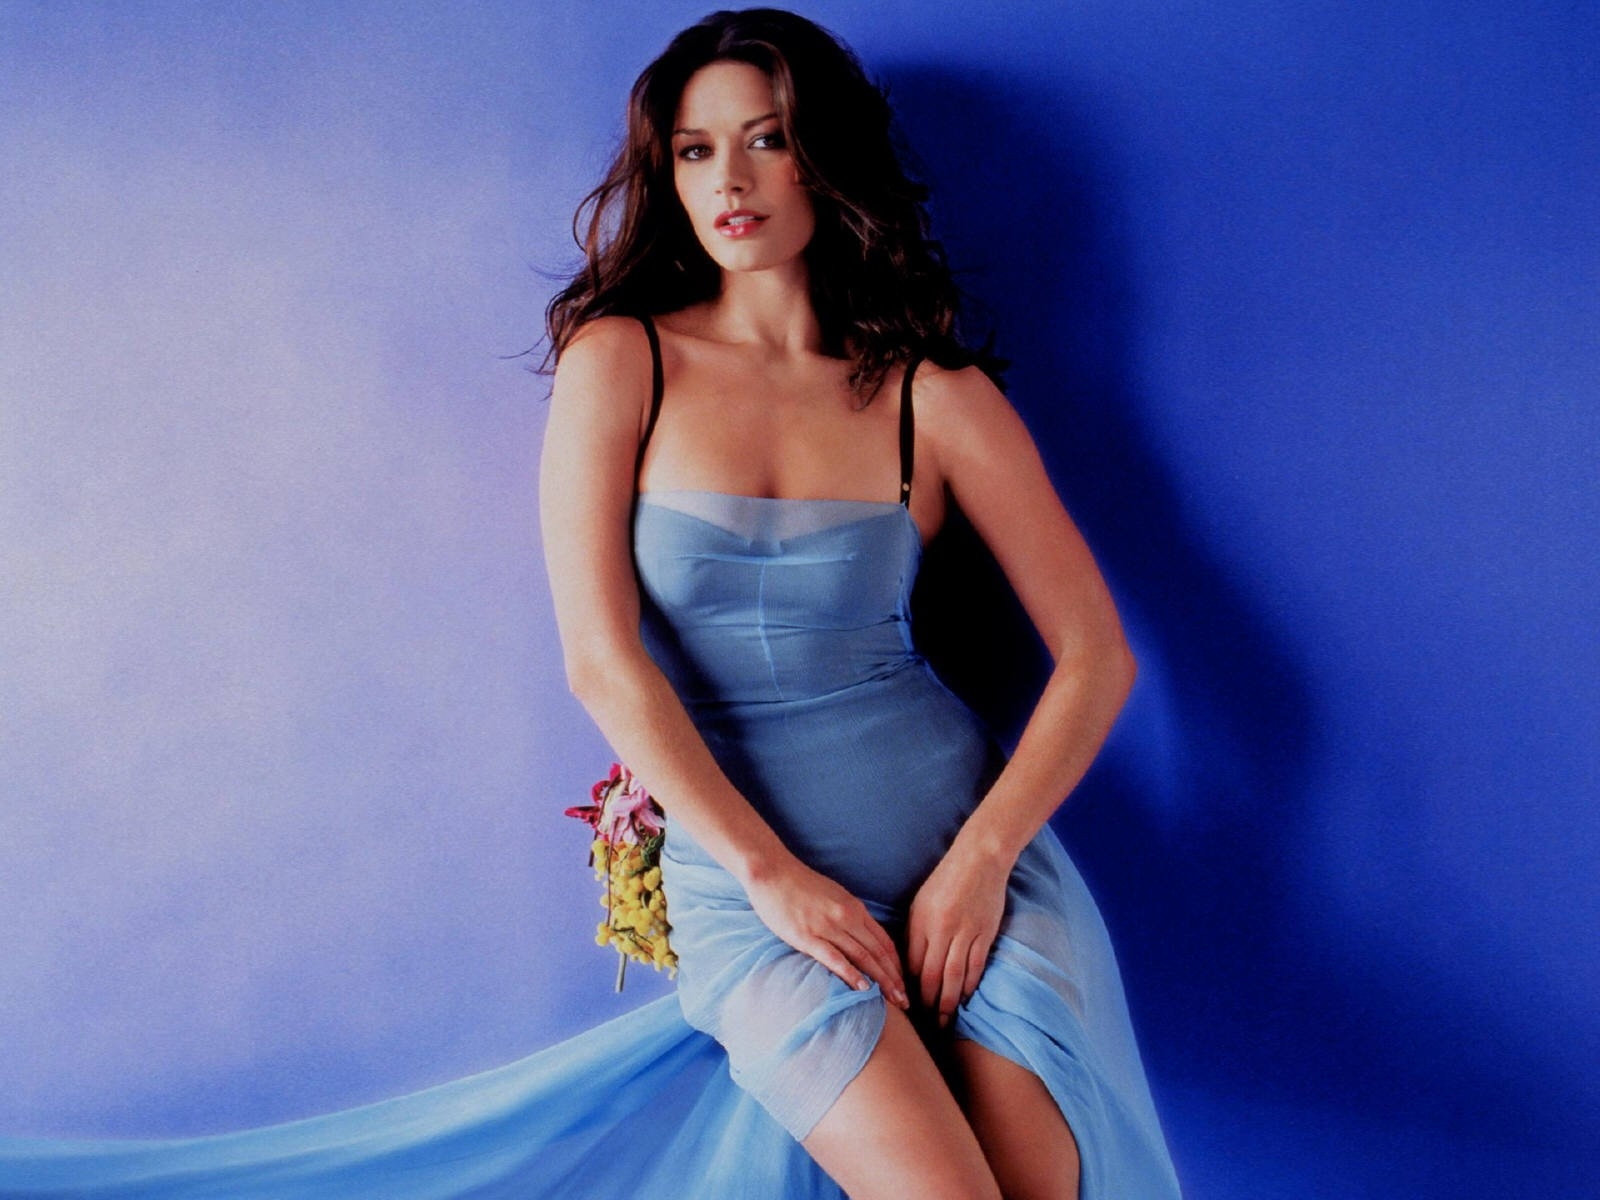 17 - Wallpaper di Catherine Zeta-Jones